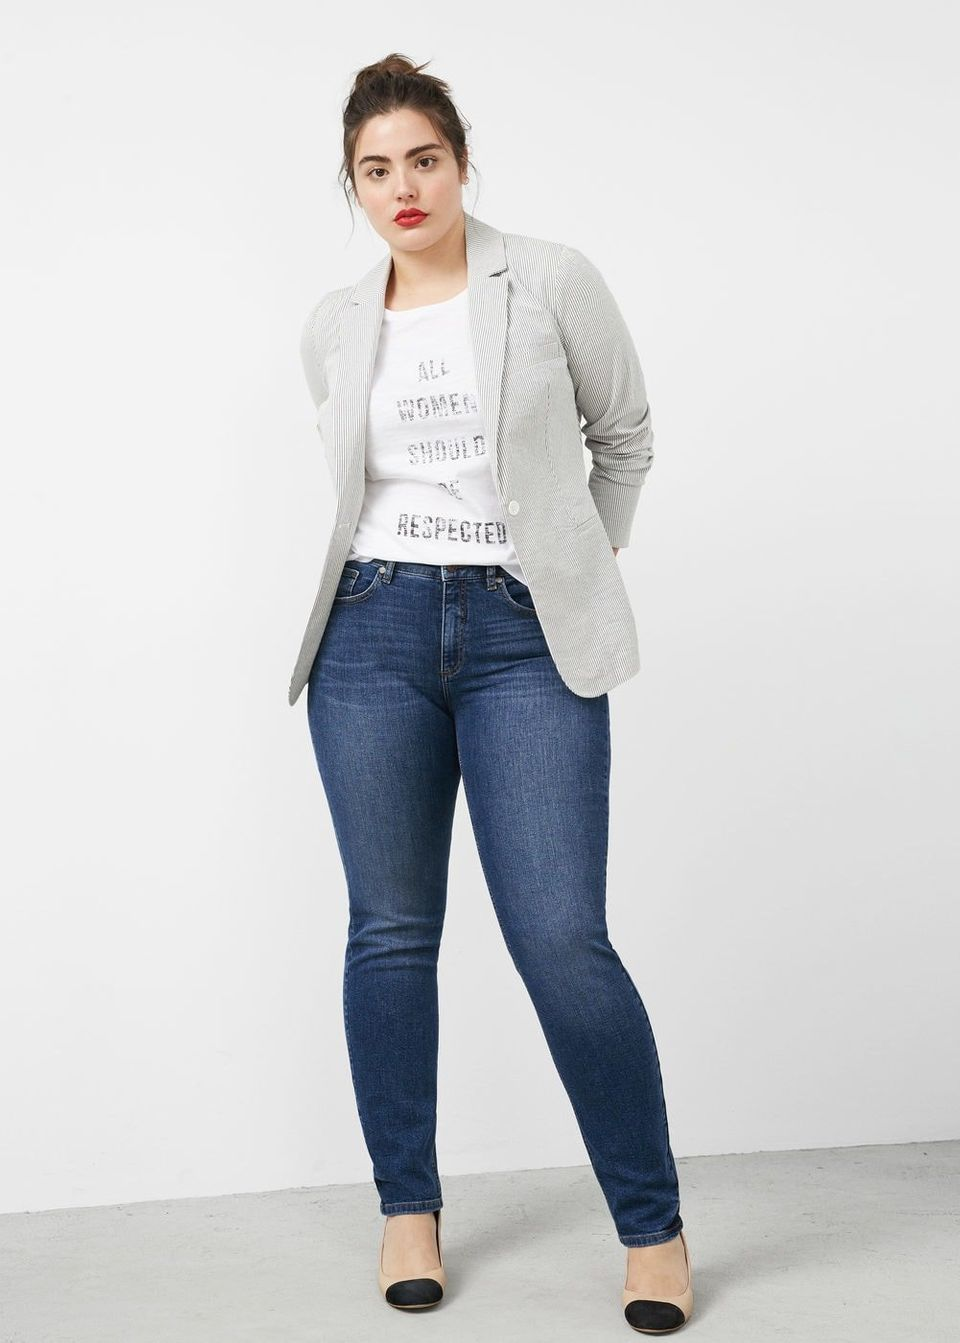 bb51098f30d 17 Sites For Plus-Size Jeans And Shorts That Are Stylish And ...